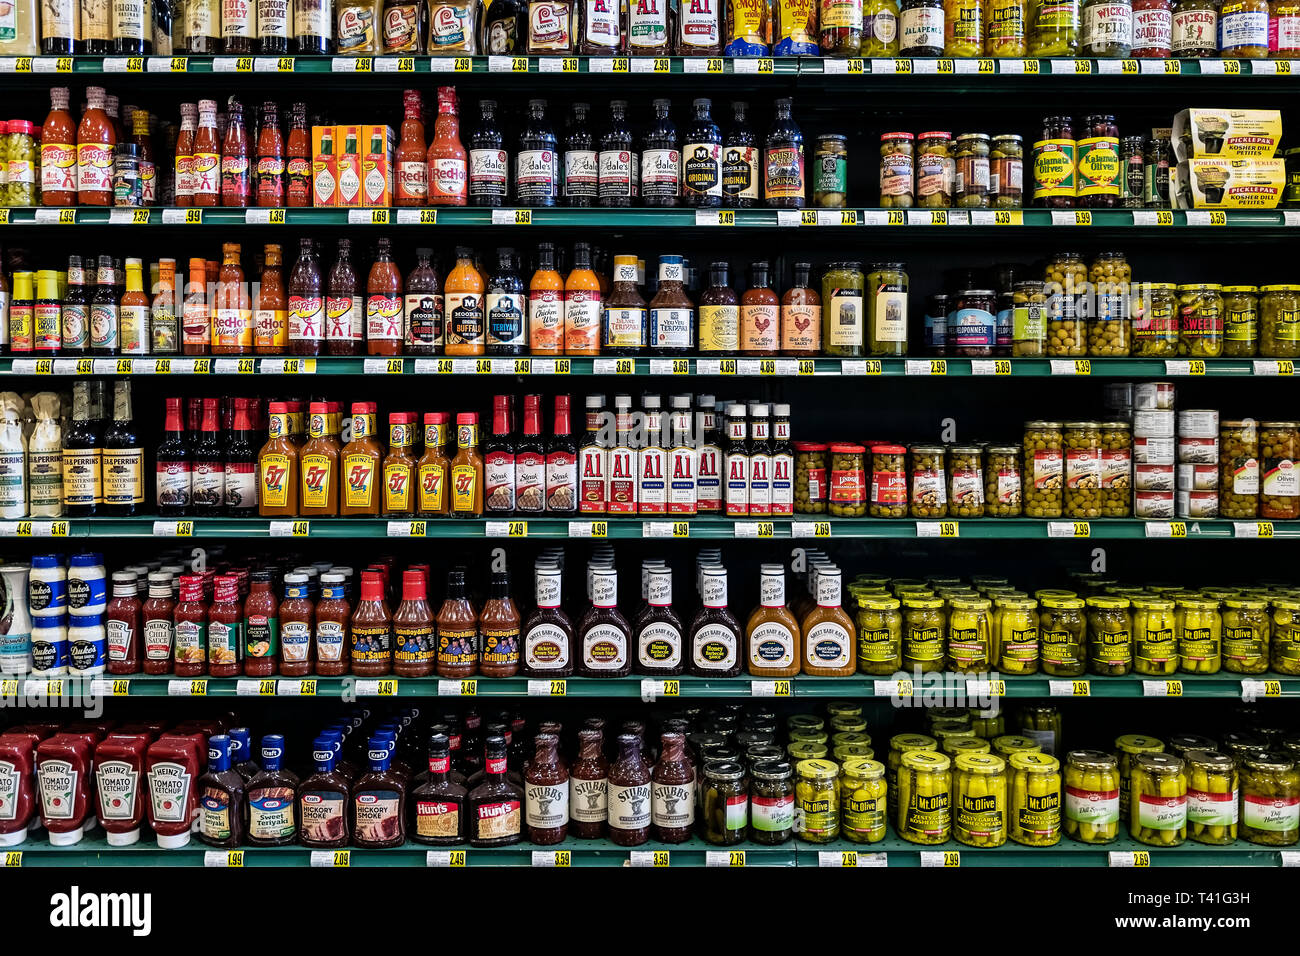 Condiment brands displayed on the shelves of a grocery store. Stock Photo